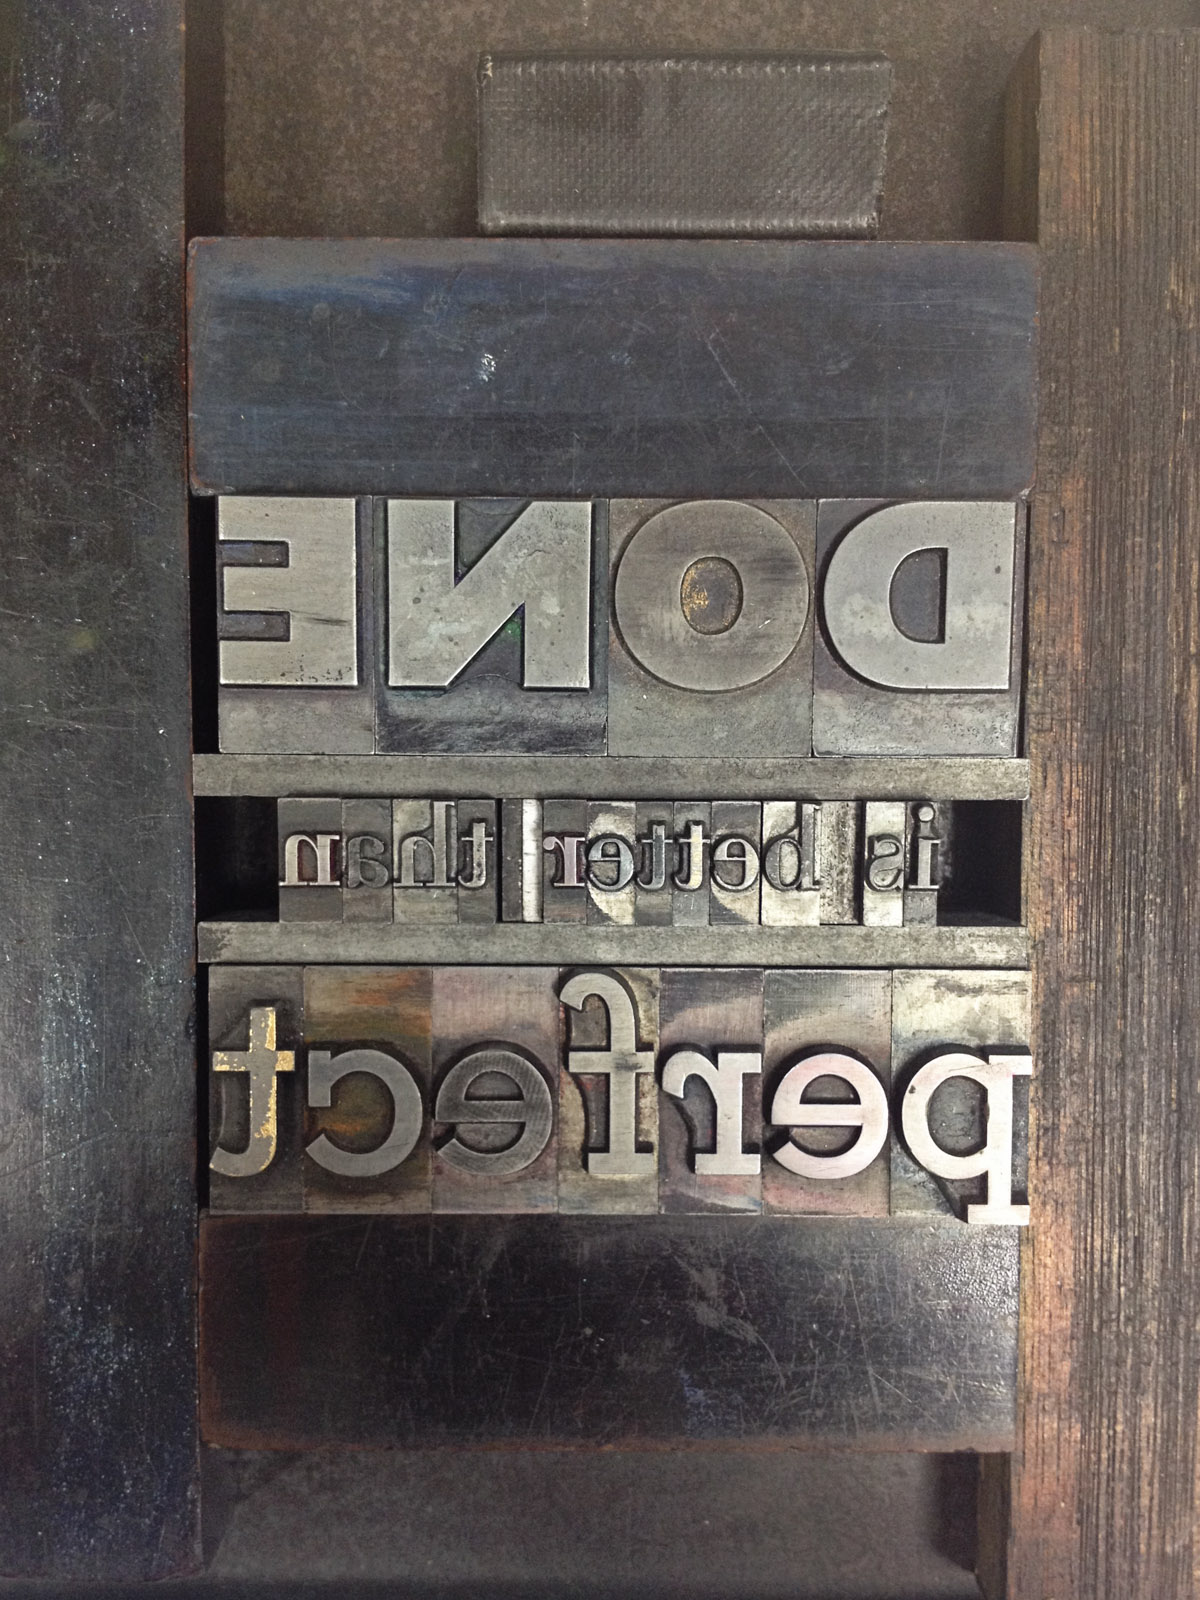 Metal type set in a forme held together with magnets. It's tough trying to think in mirror image!